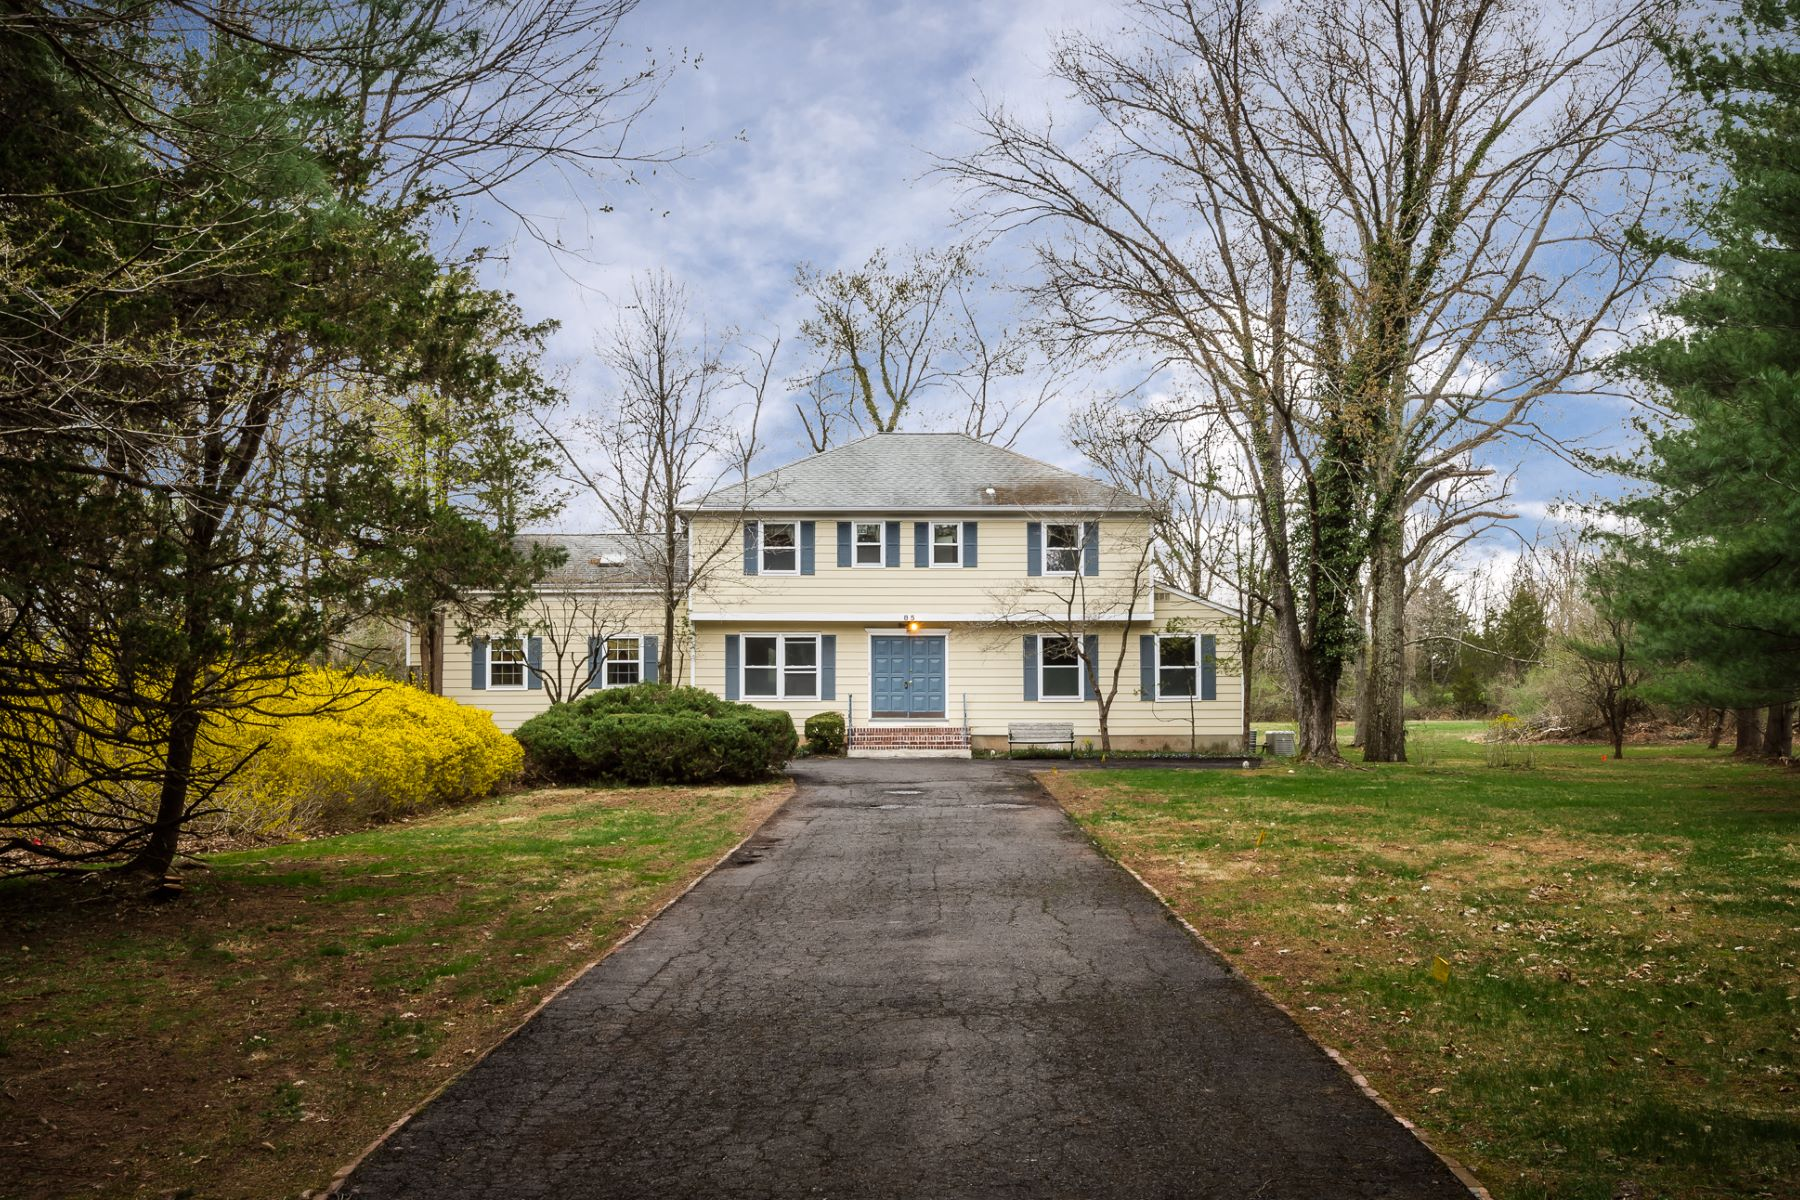 Make It Your Own 85 Cherry Brook Drive, Princeton, New Jersey 08540 Hoa Kỳ